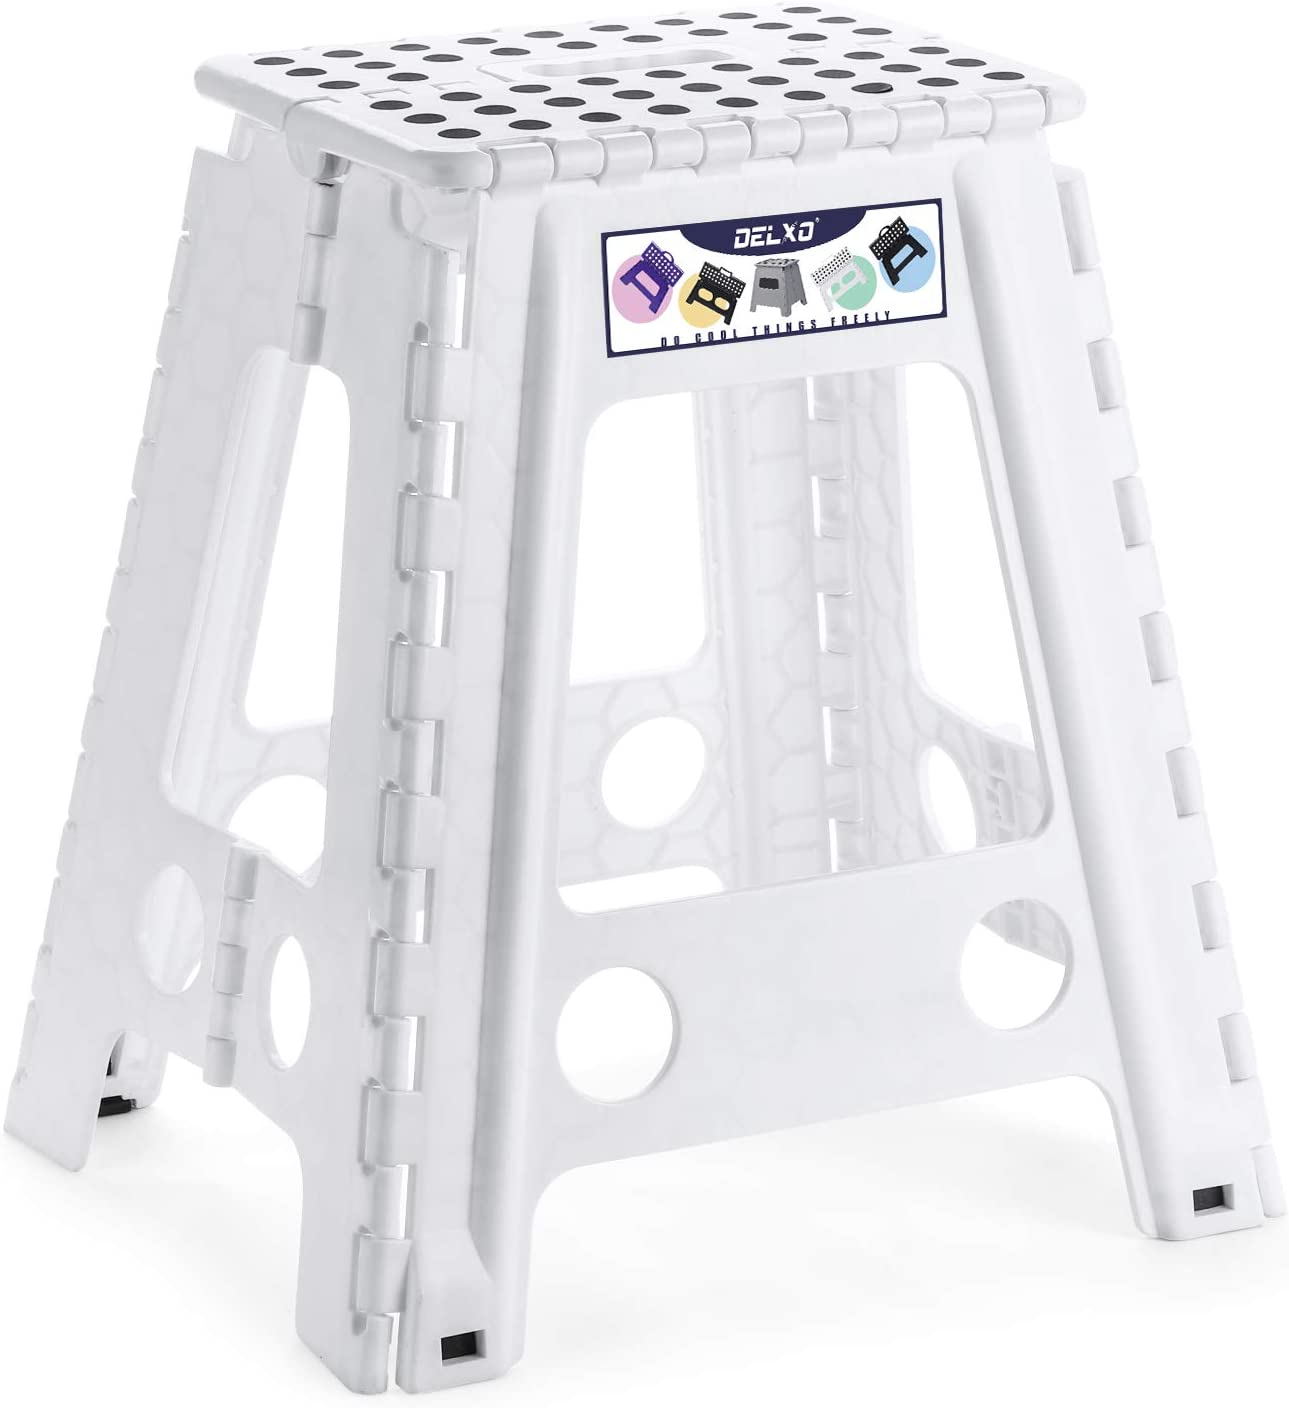 """Delxo 18"""" Folding Step Stool in White,1 Pack Premium Heavy Duty Foldable Stool for Adults,Portable Collapsible Plastic Step Stool,Non Slip Folding Stools for Kitchen Bathroom Bedroom"""